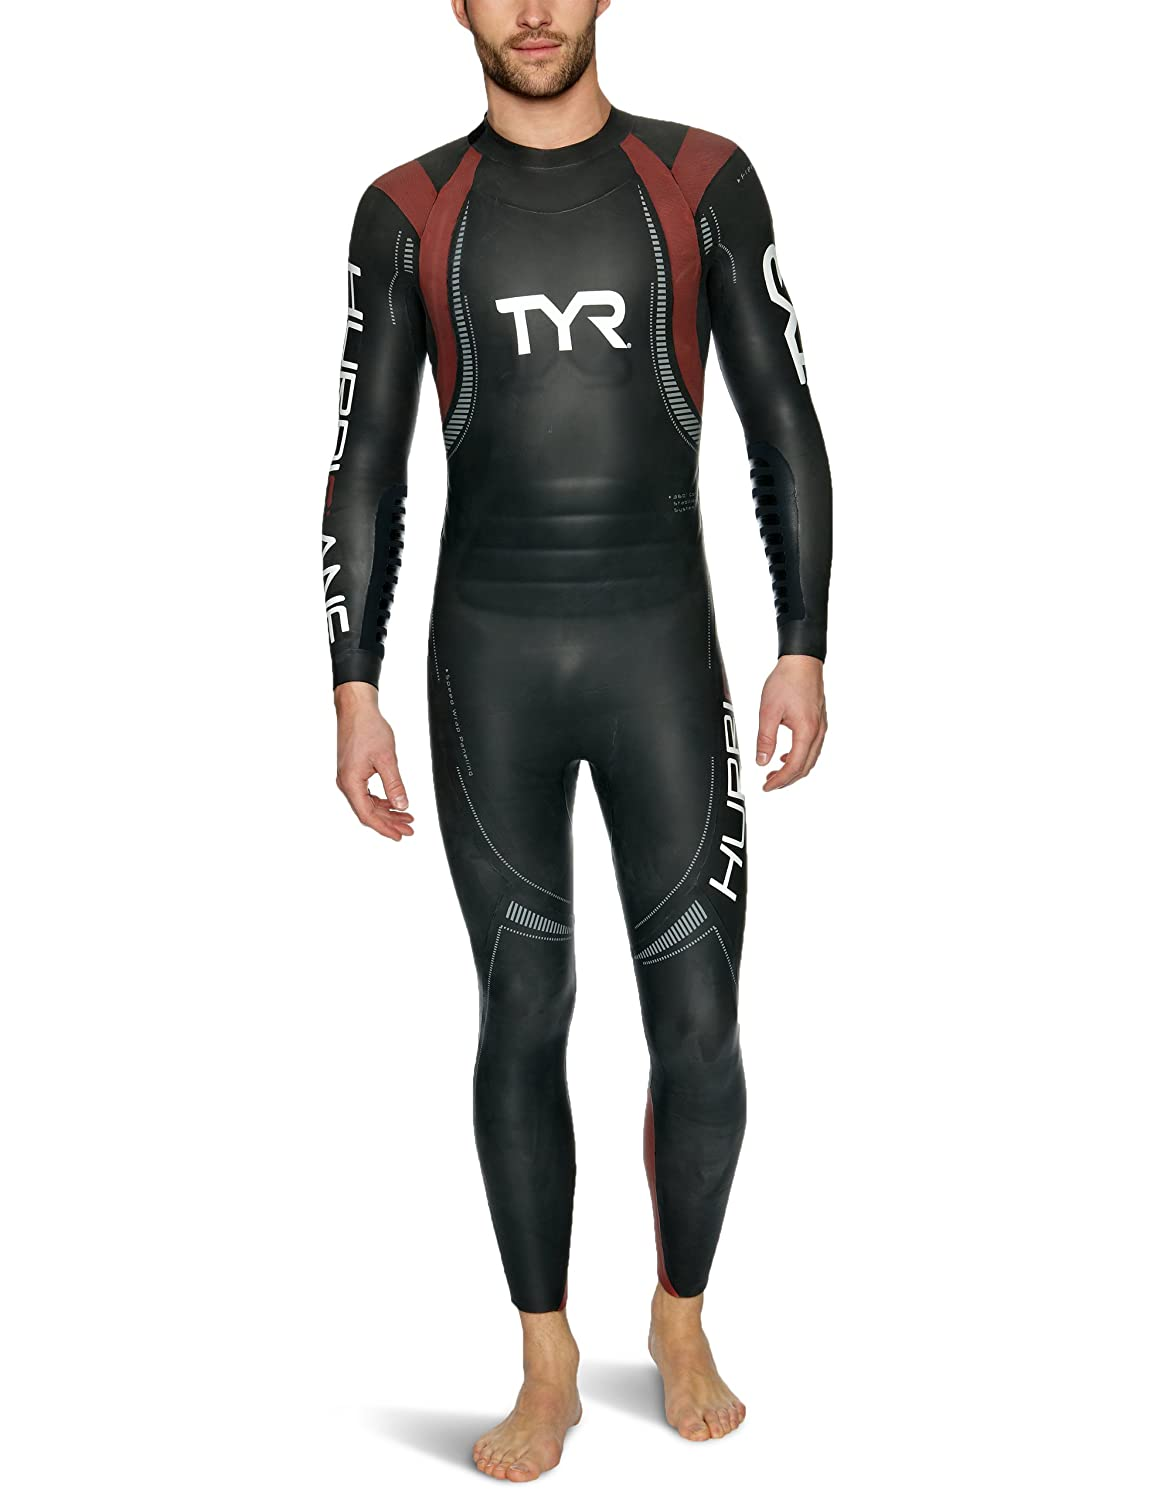 da2f474ad8be6 Amazon.com   TYR Sport Men s Category 5 Hurricane Wetsuit (X-Small)    Sports   Outdoors